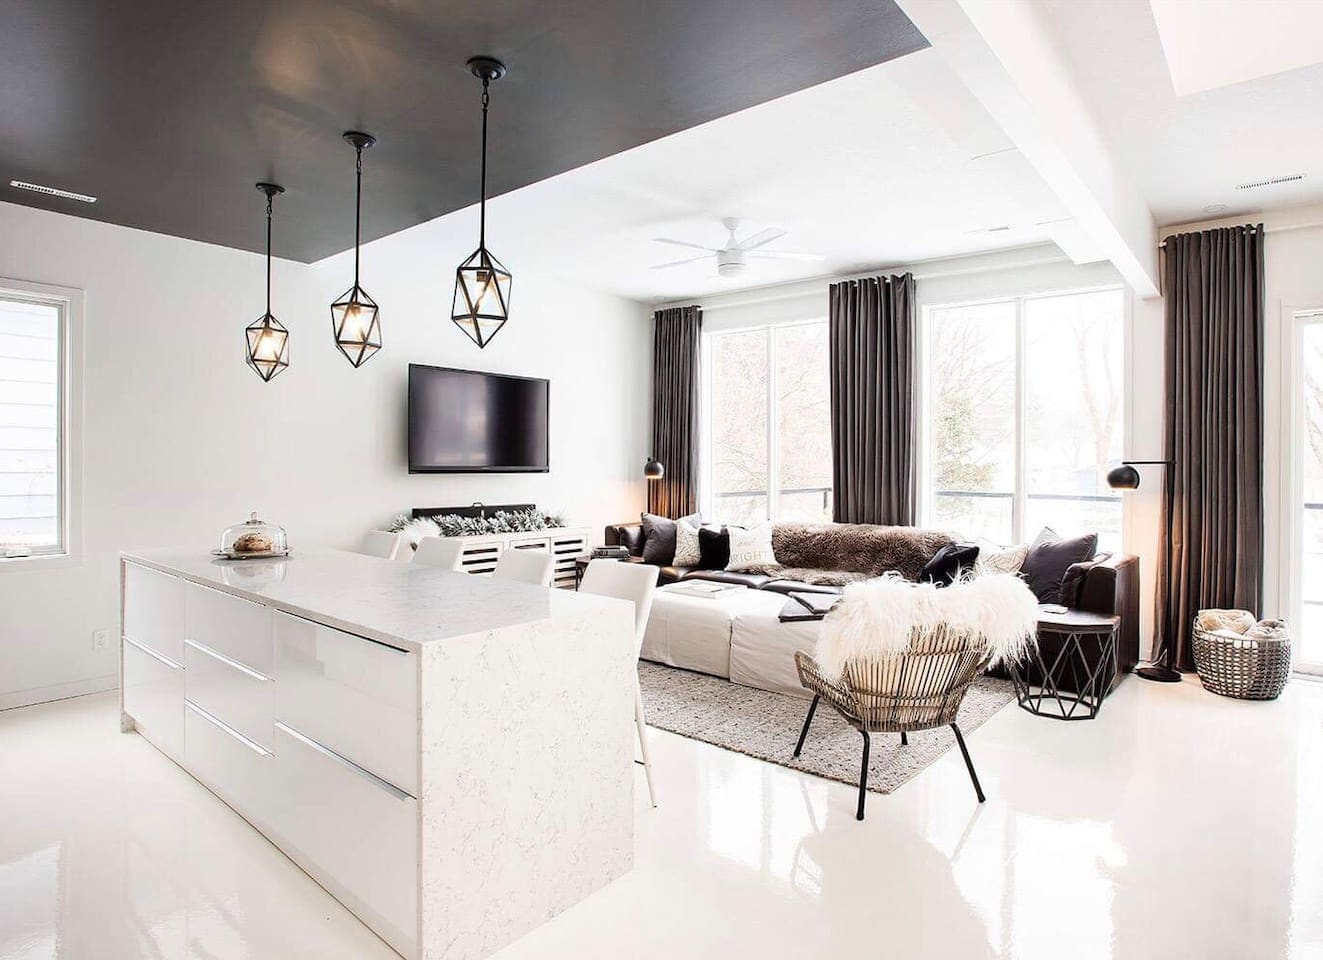 Living room and kitchen island